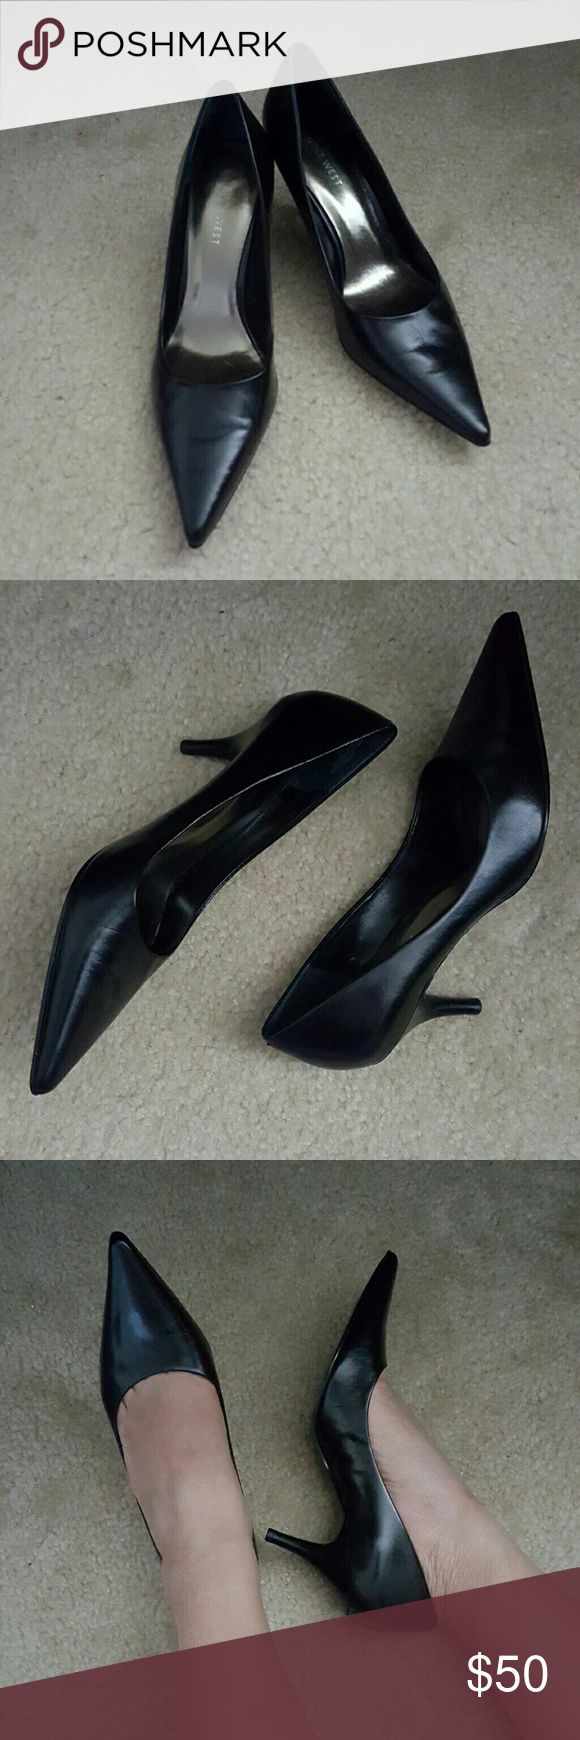 Nine West Heels Black pointed shoes with 3 in. heels. No box or dustbag. Used only once. Nine West Shoes